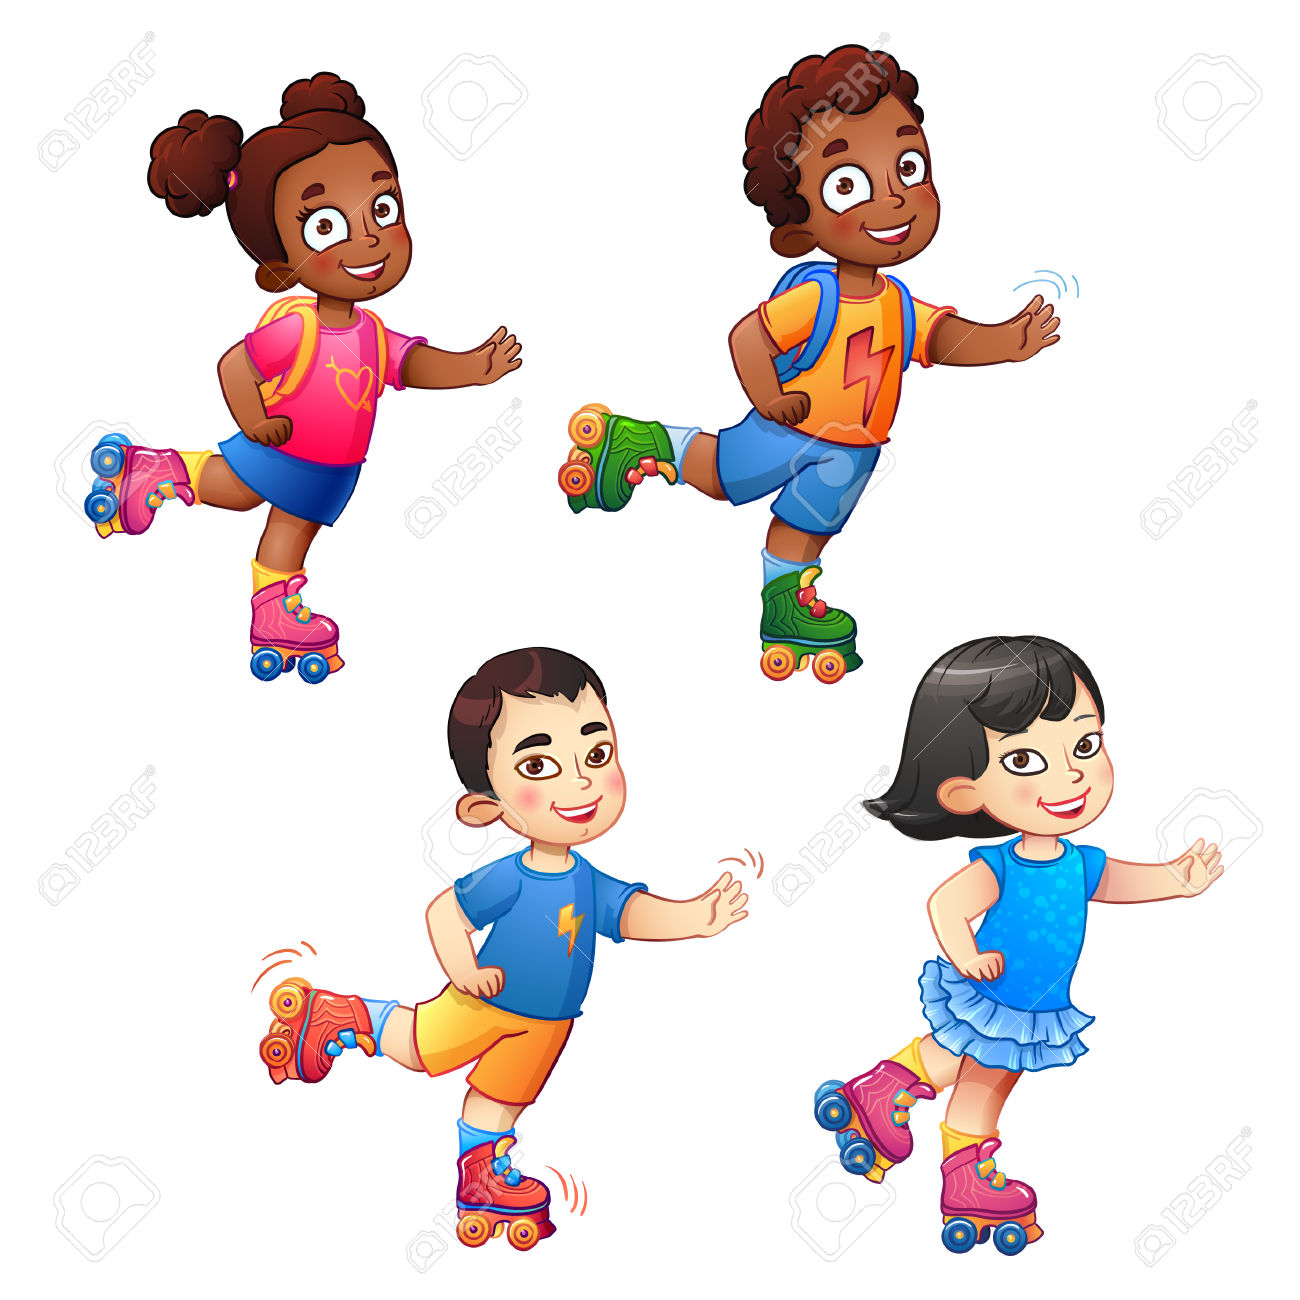 Girl Rollerblading Clipart With No Splash.